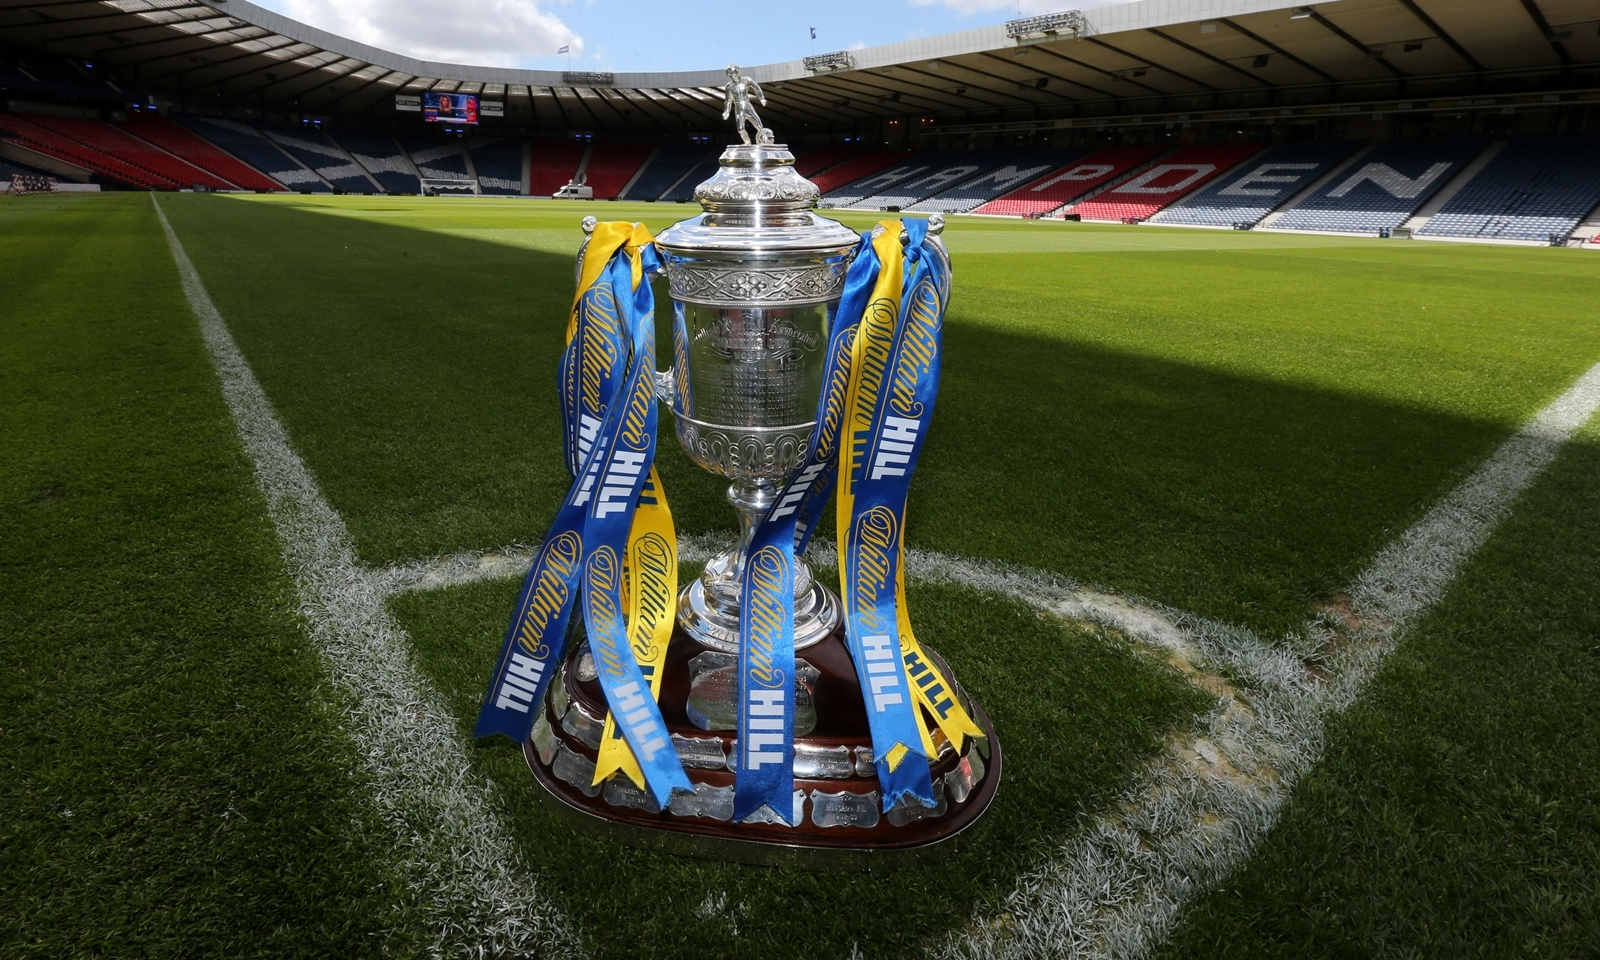 The William Hill Scottish Cup is displayed during a photocall at Hampden Park, Glasgow. Celtic will face Hibernian in the 2013 William Hill Scottish Cup Final on Sunday.